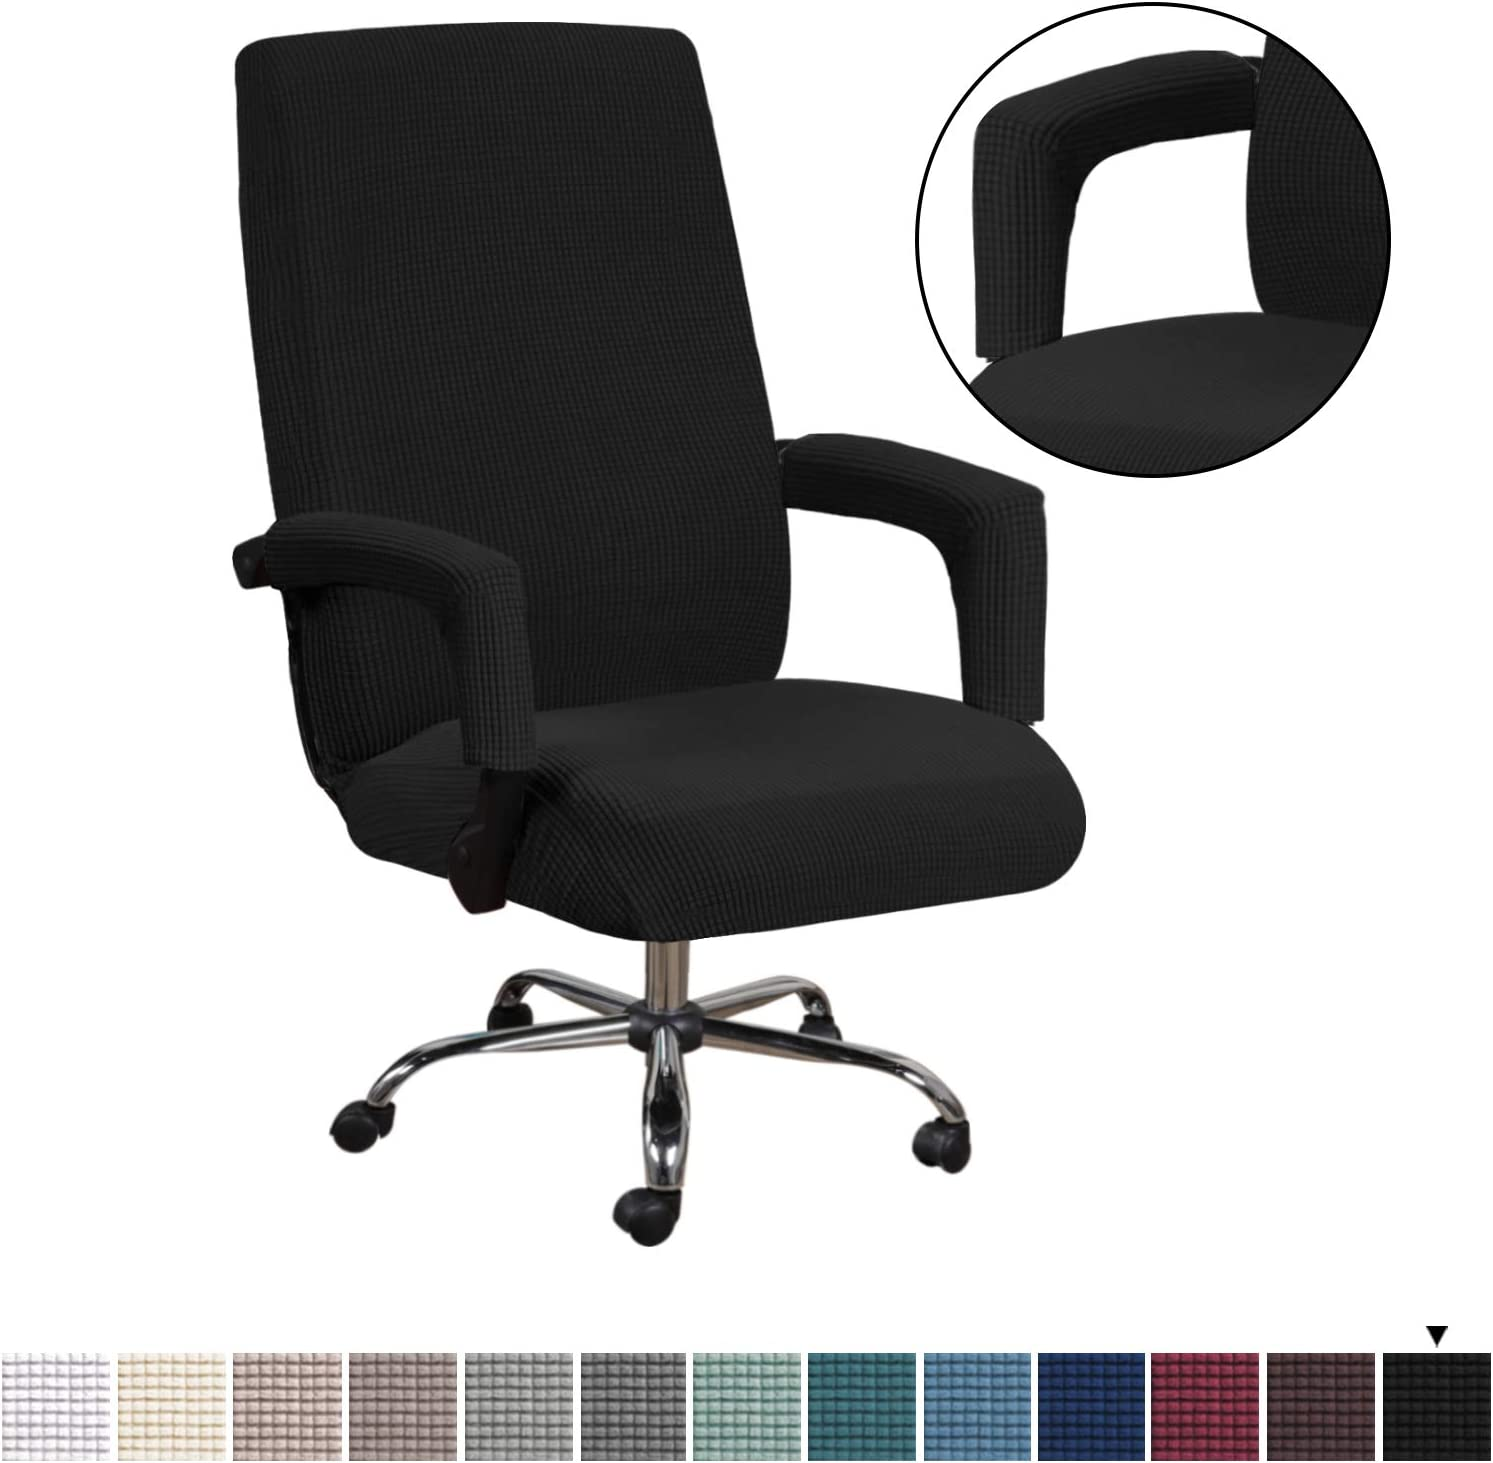 H.VERSAILTEX Spandex Polyester Chair Covers for Computer Office Stretching Skid Resistance Furniture Covers, Thick and Durable Soft Spandex Jacquard Zipper Rotating Medium Back Chair Cover, Black